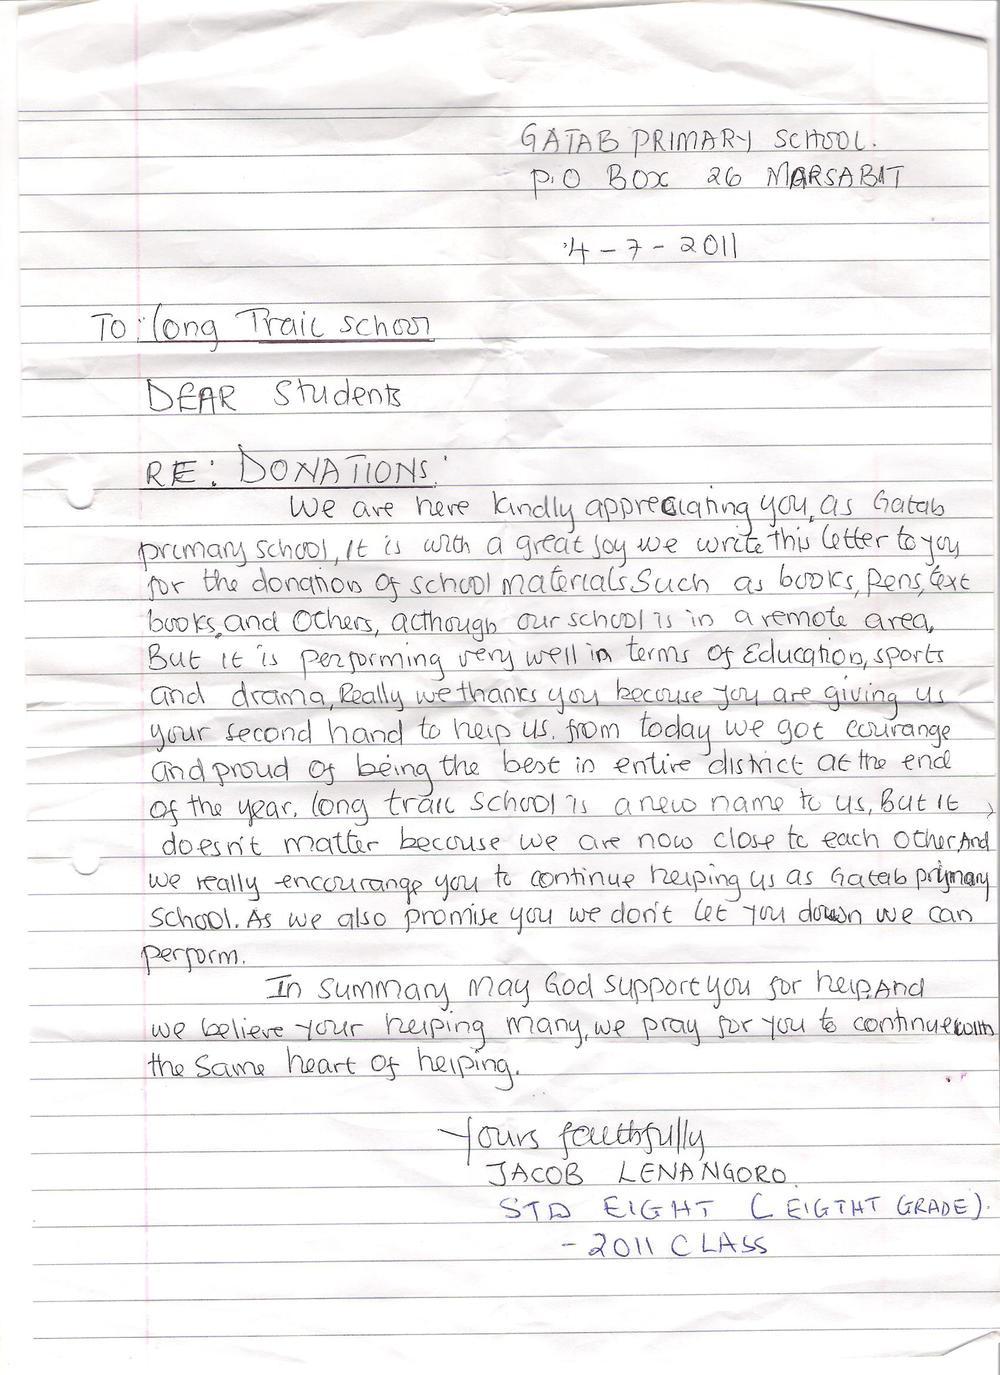 Letter to Long Trail School.jpg